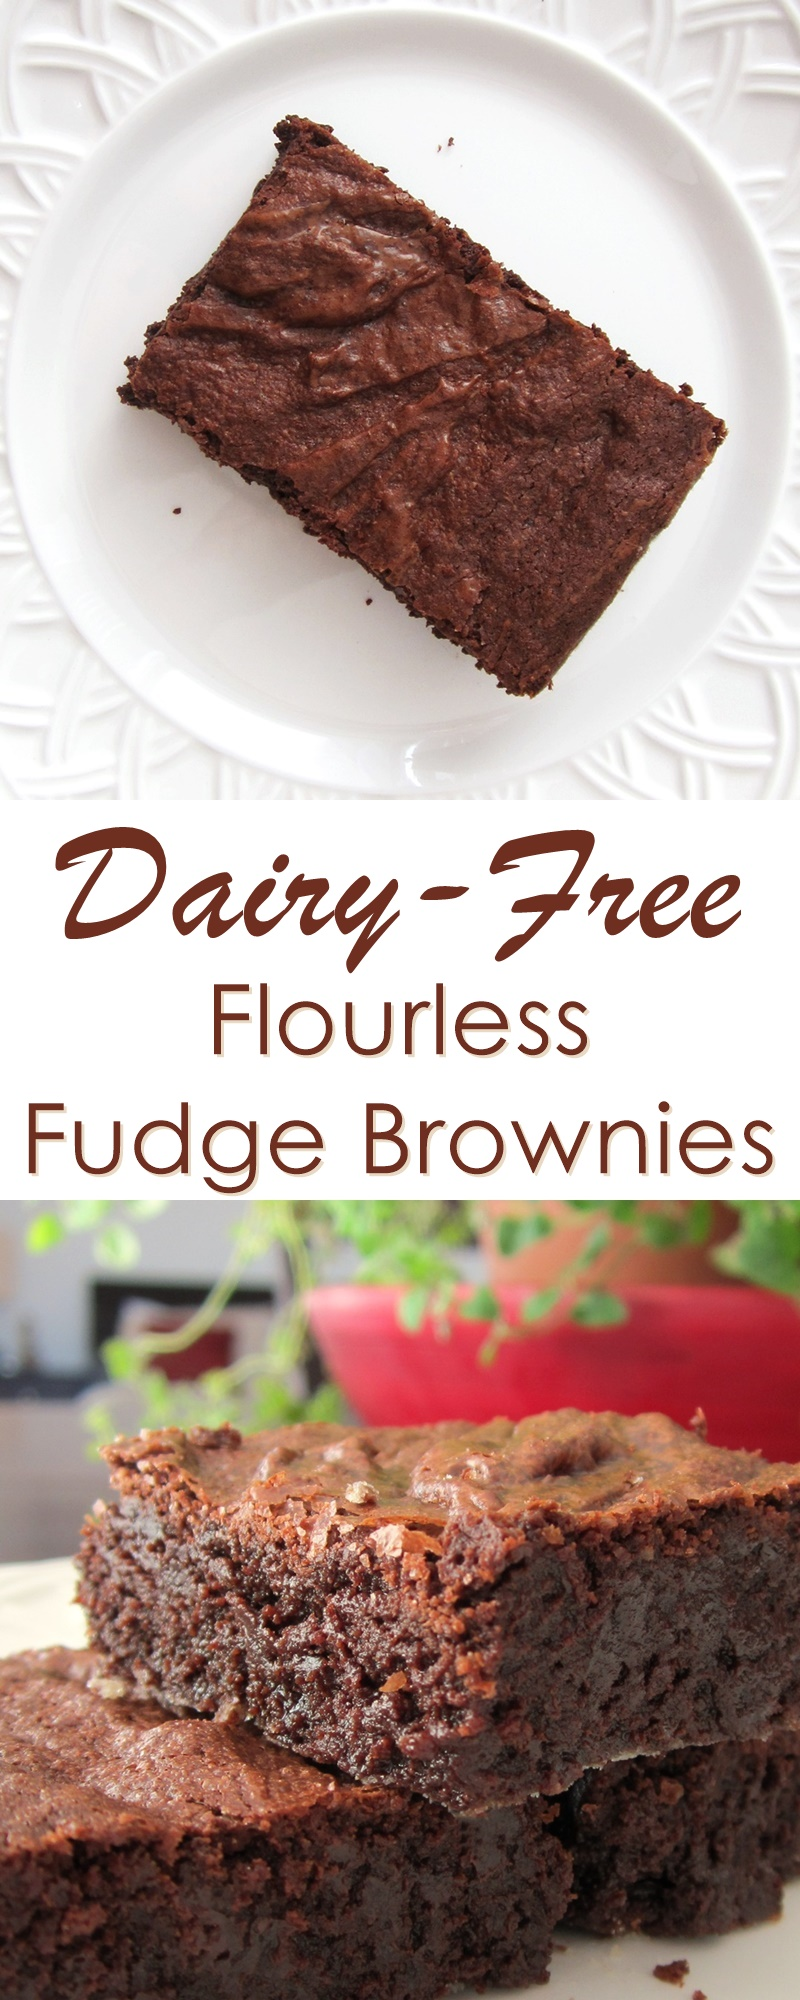 how to make dairy free fudge